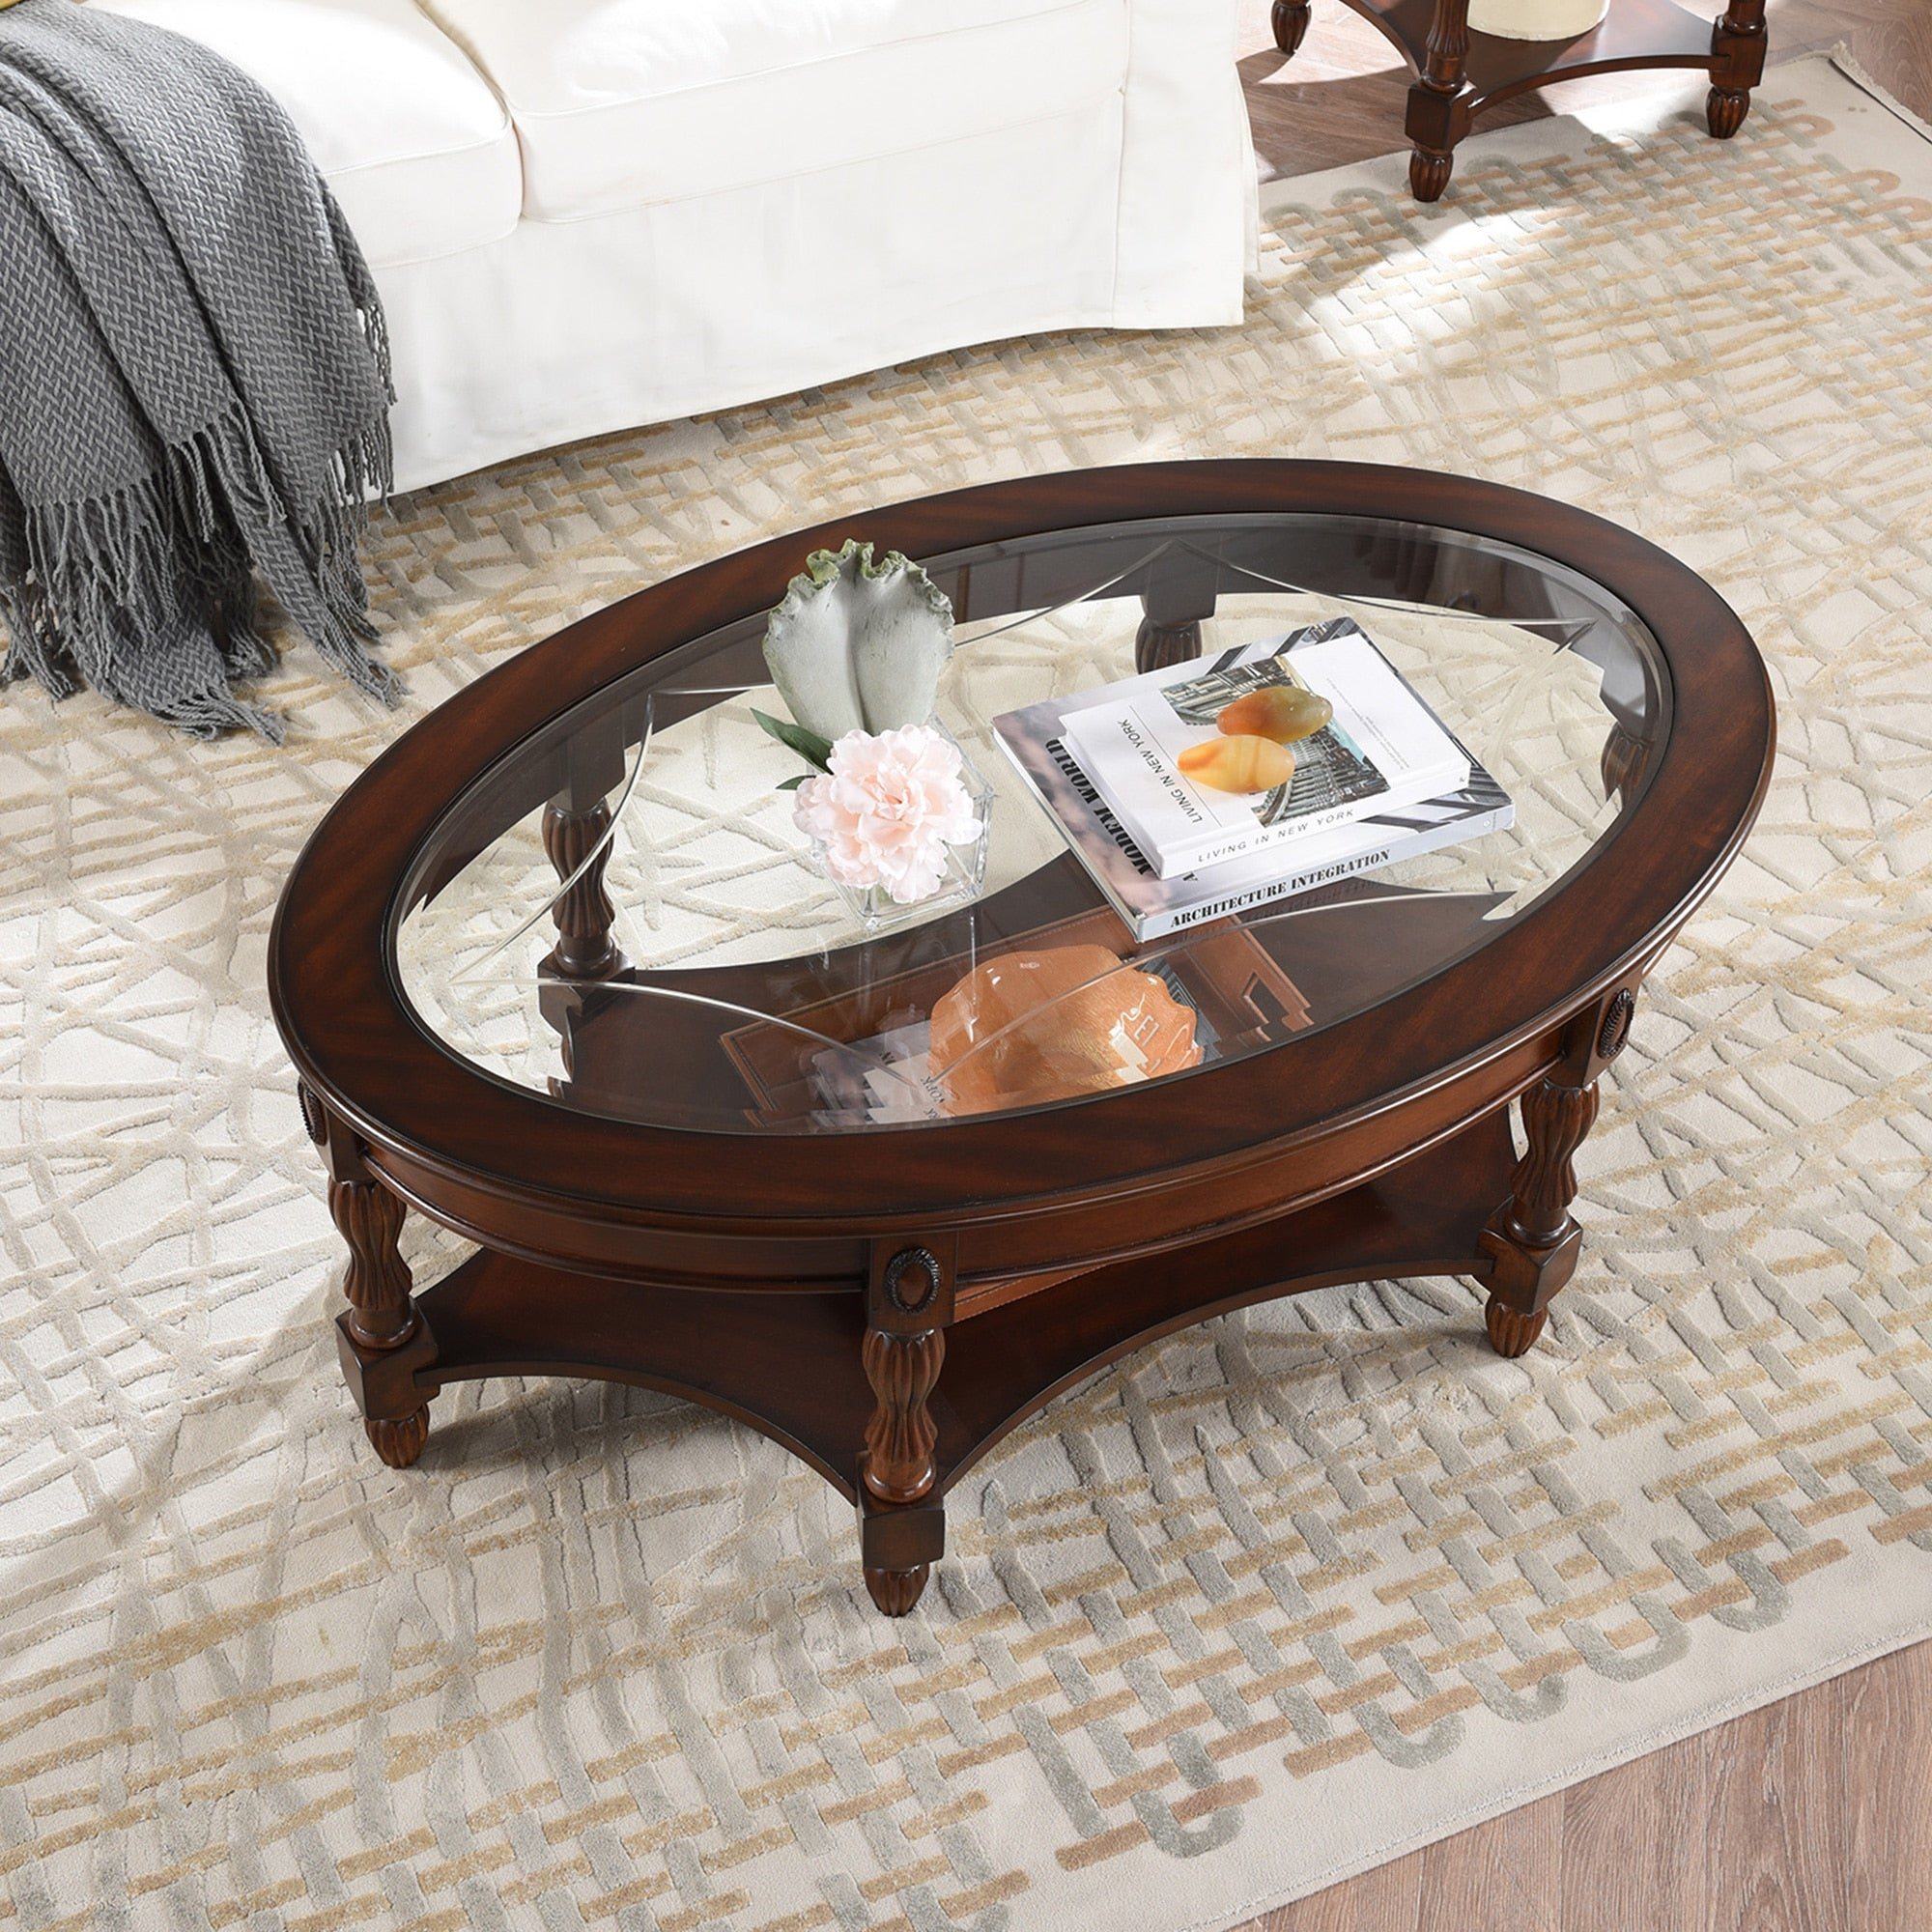 Vintage Style Double-layer Coffee Table for Living Room | The Brand Decò